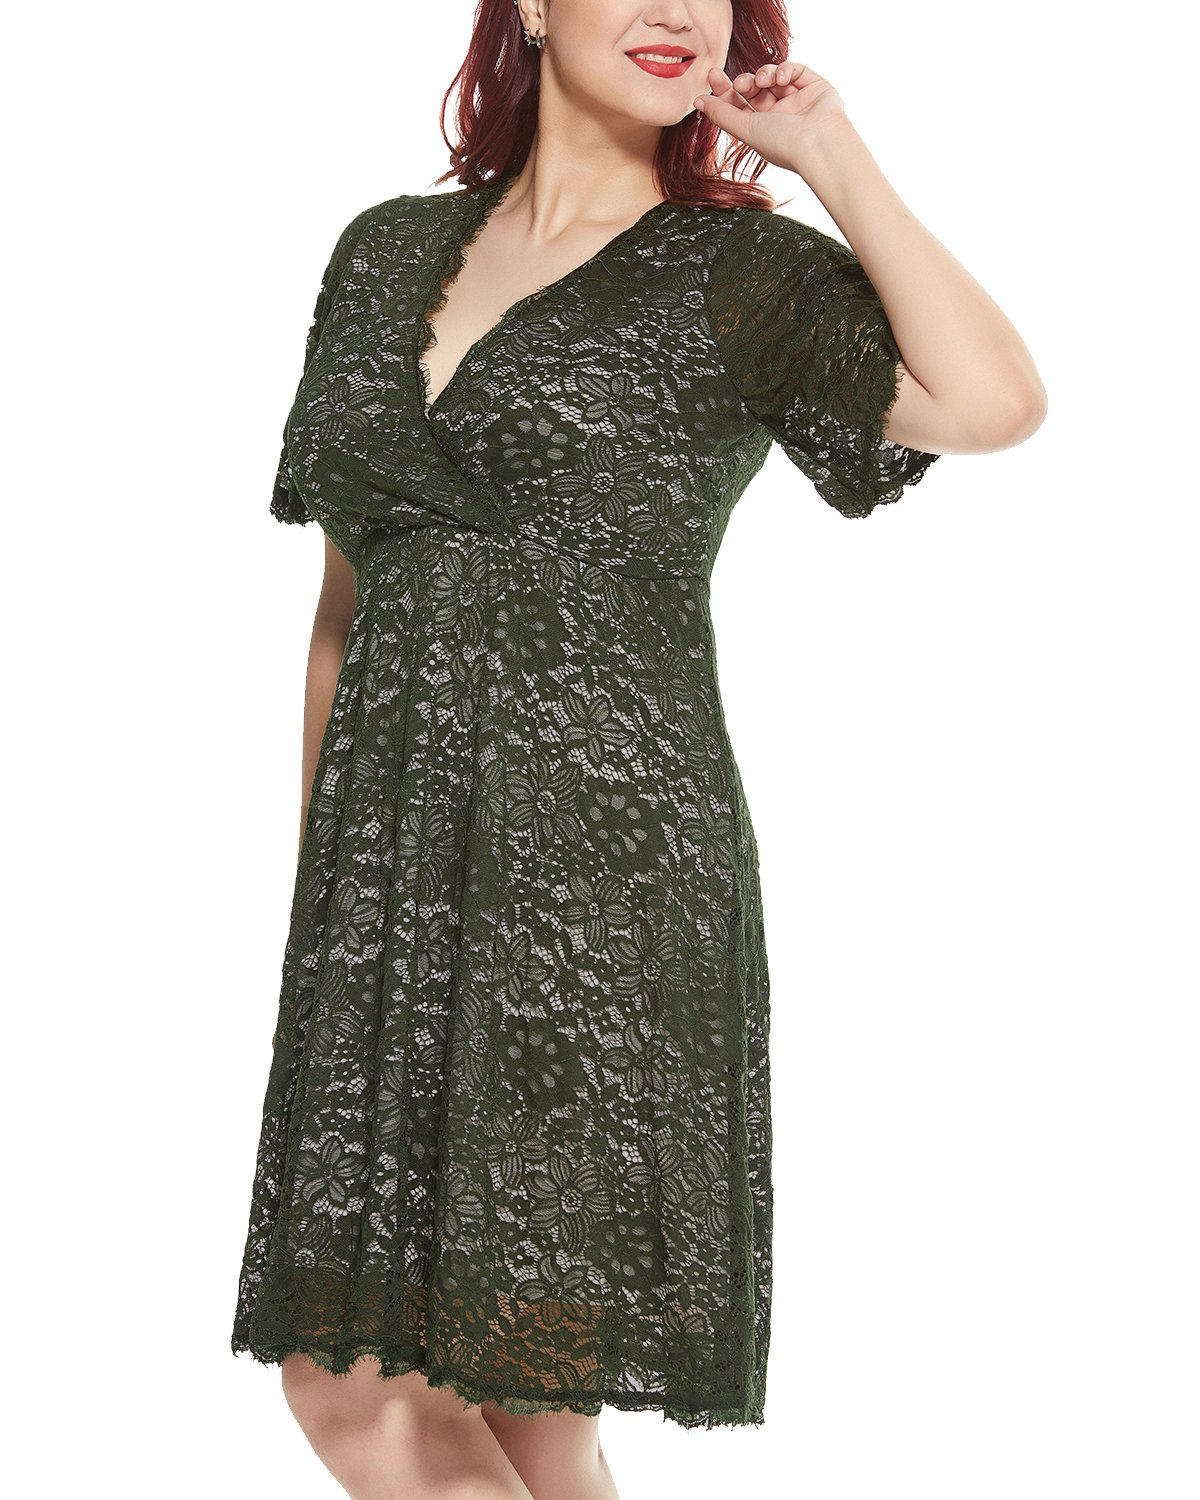 Women's Plus Size Flutter Sleeve V-Neckline Lace Flared Cocktail Party Dress Green 24W by Daci (Image #2)